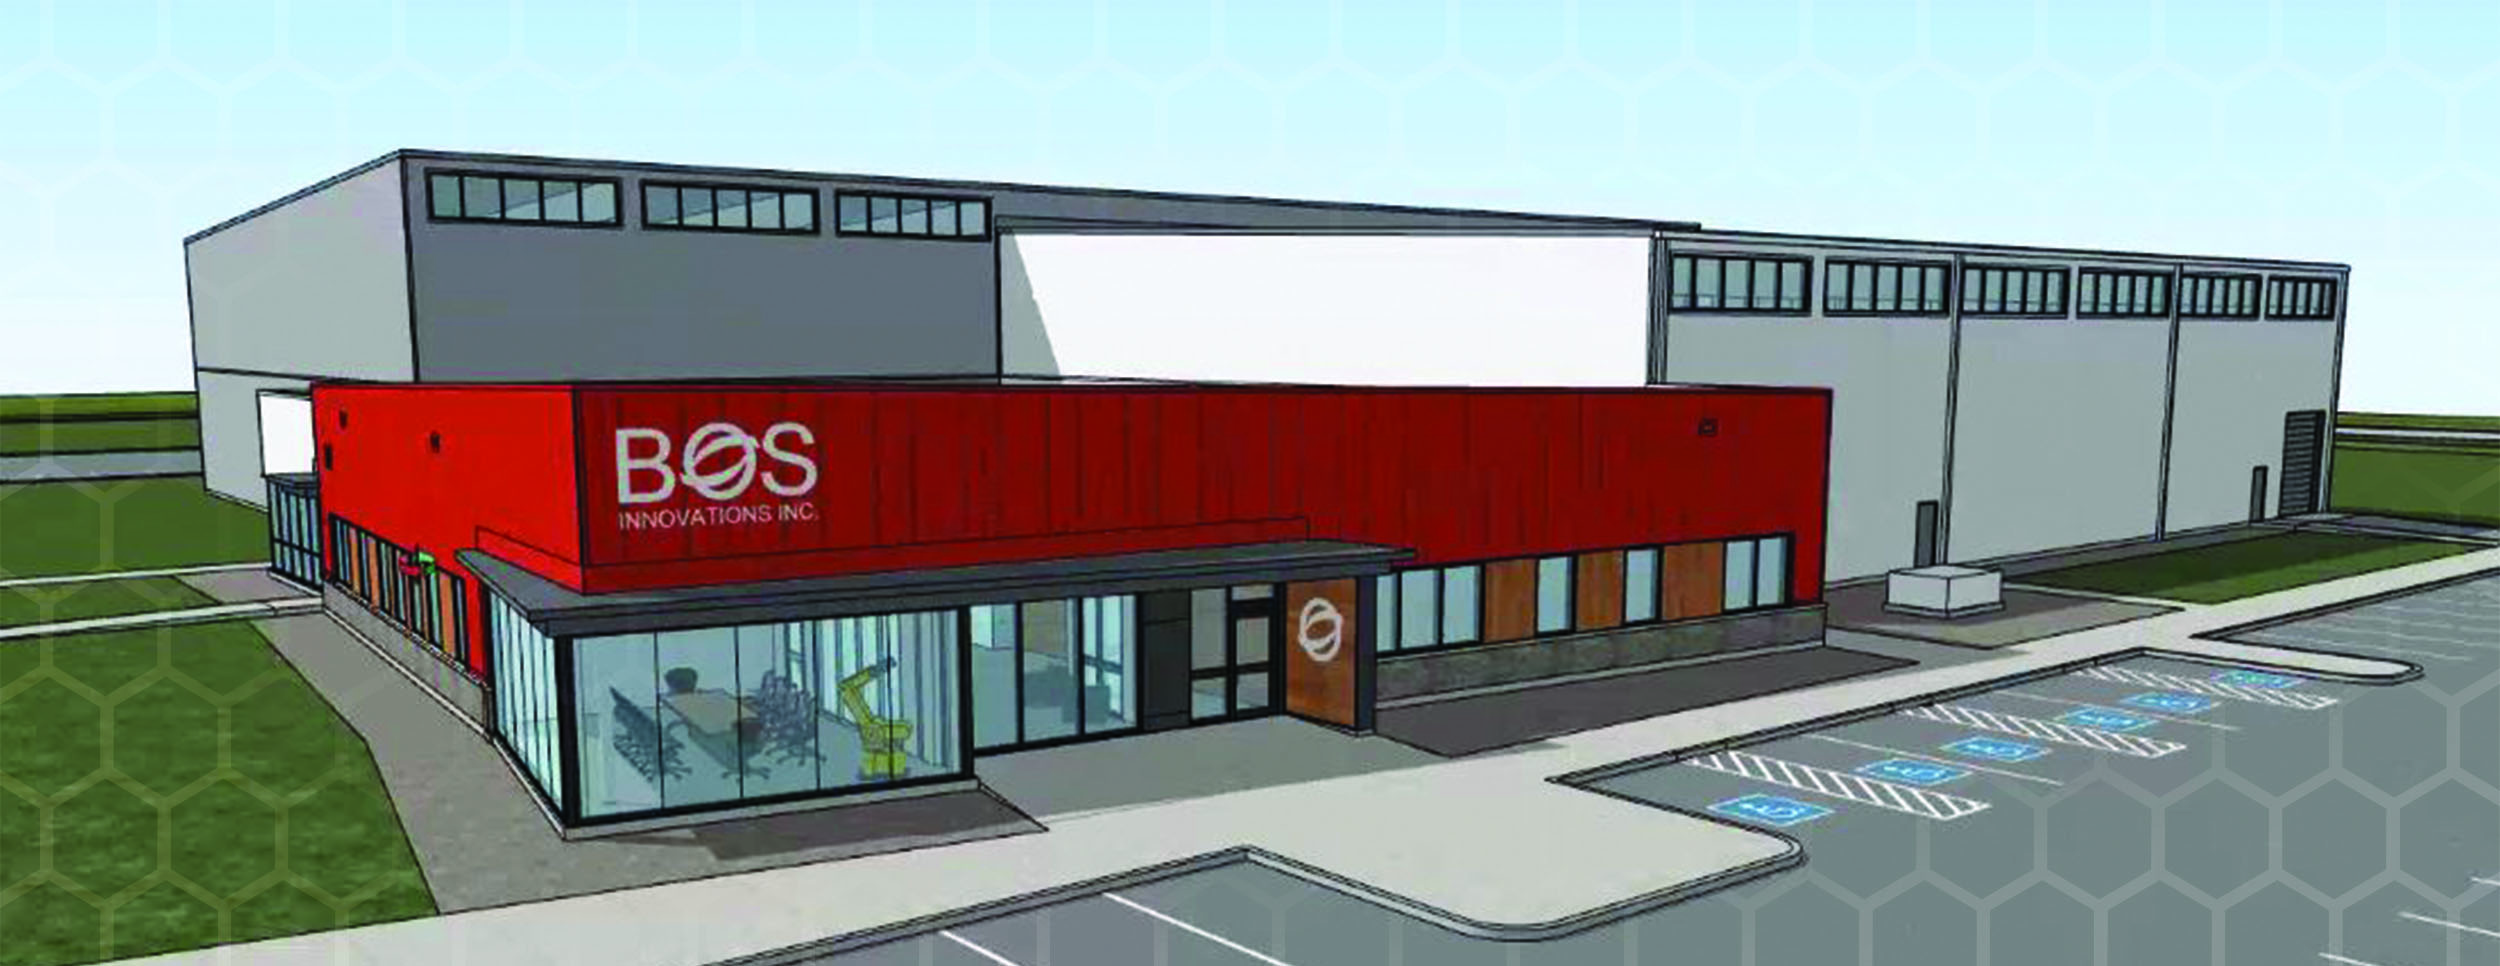 Exterior Rendering of the new BOS Innovation Large Industrial Facility. Front of Building is one storey with floor to ceiling glass and a red facade around the top roof line of the building. You can see the rest of the plant in the background which is 2 stories high.